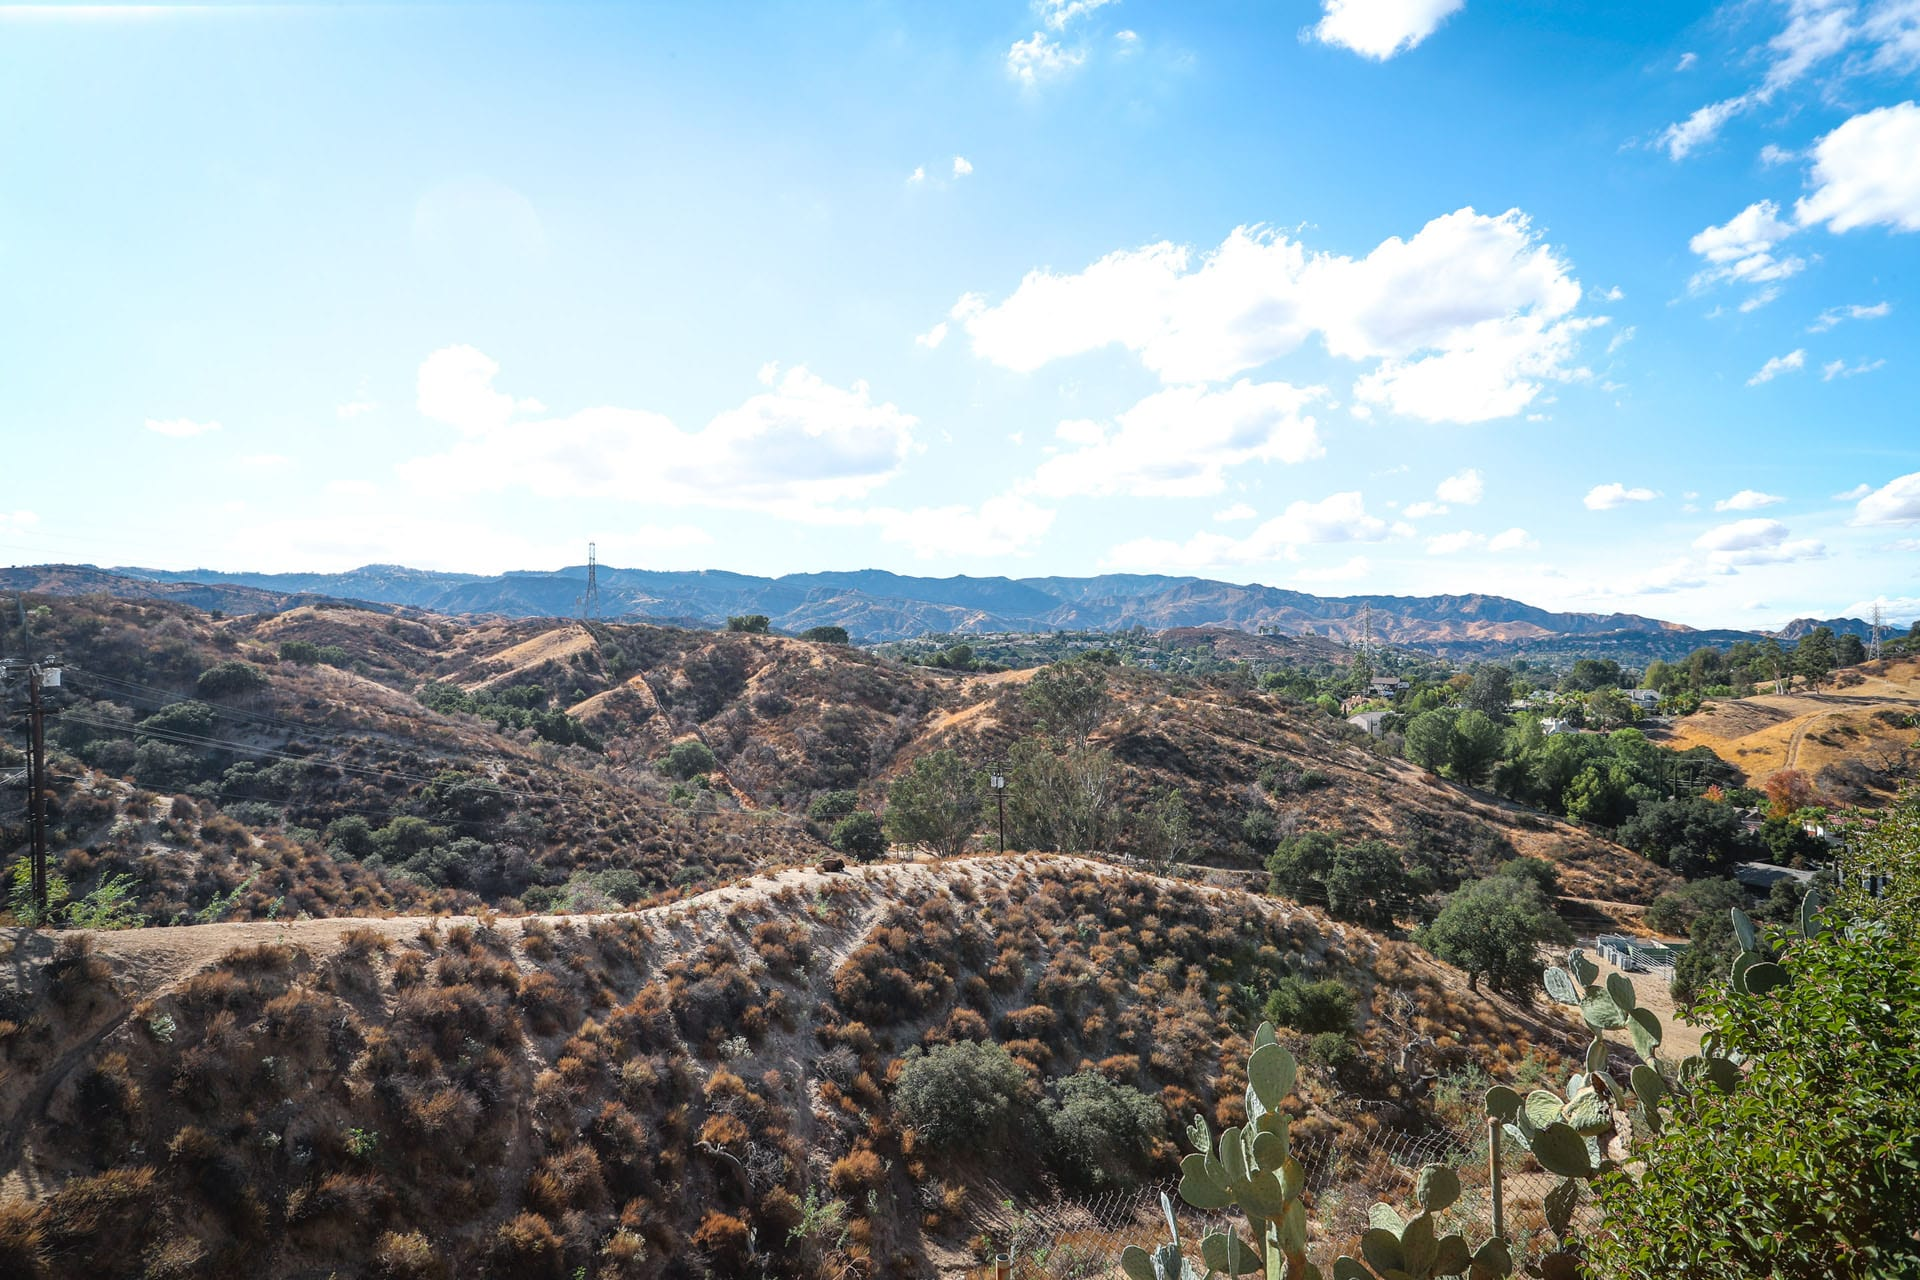 View of hills from the cacti